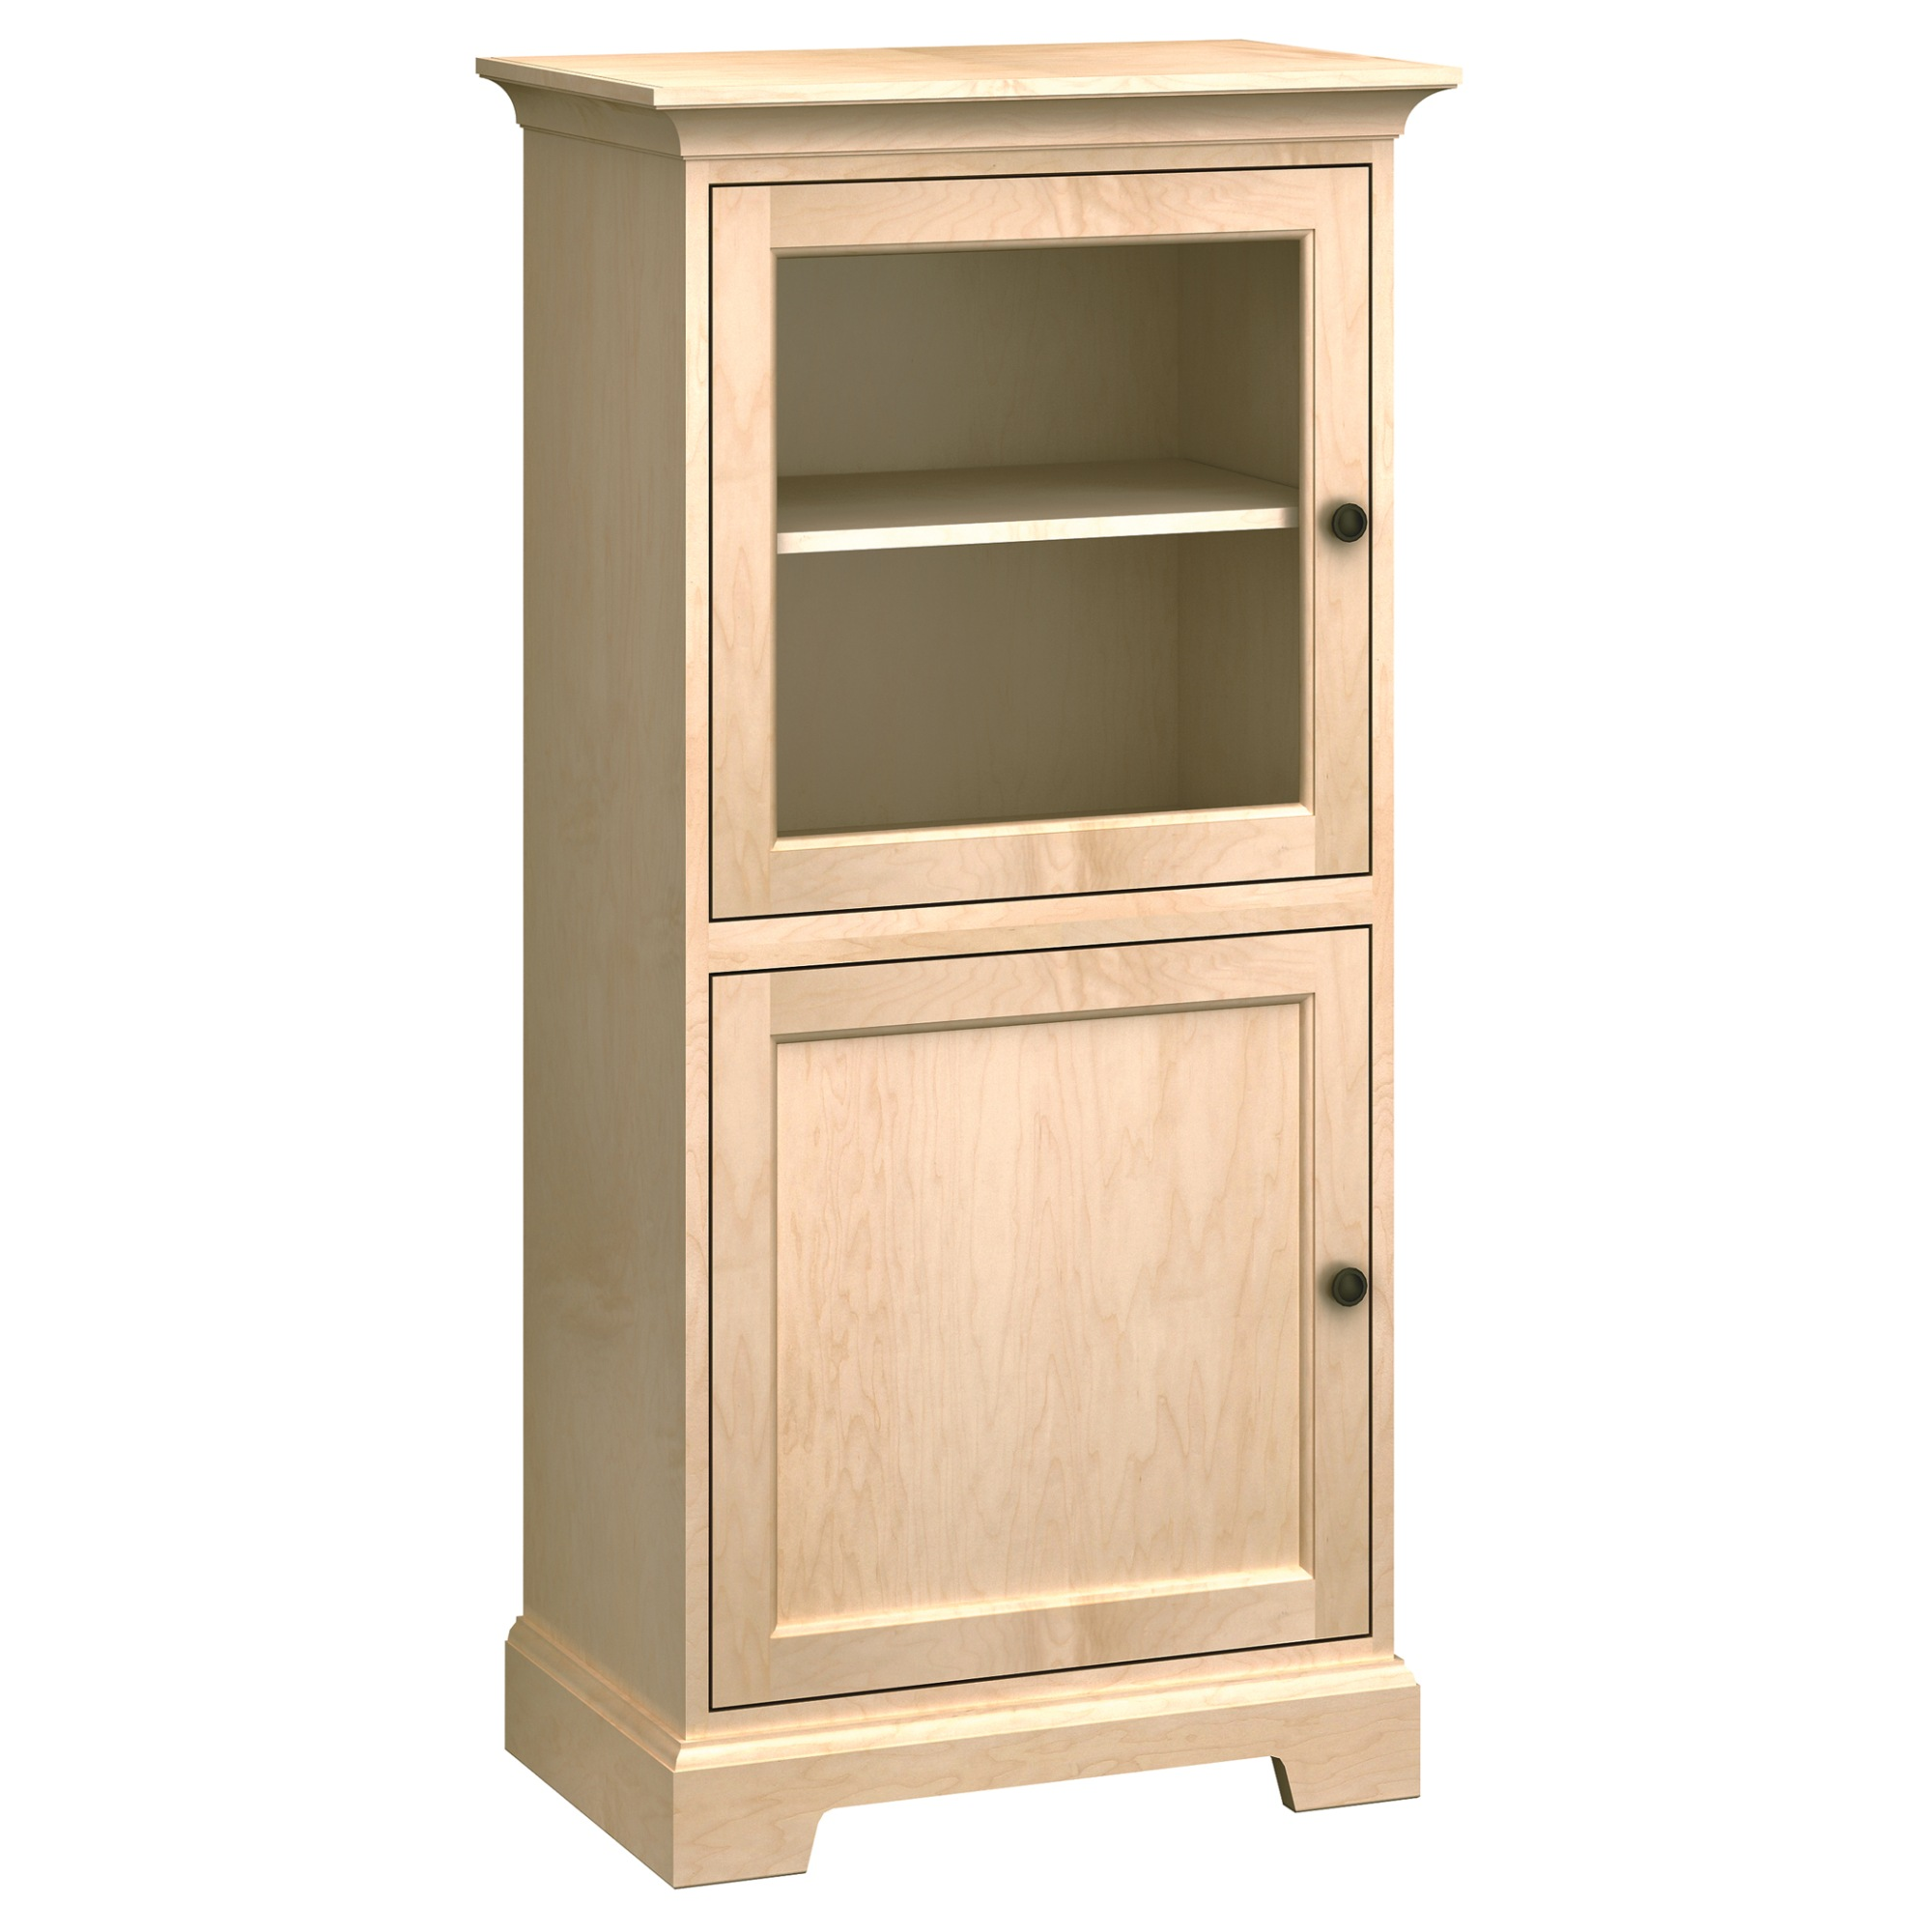 Image for HS27D Custom Home Storage Cabinet from Howard Miller Official Website